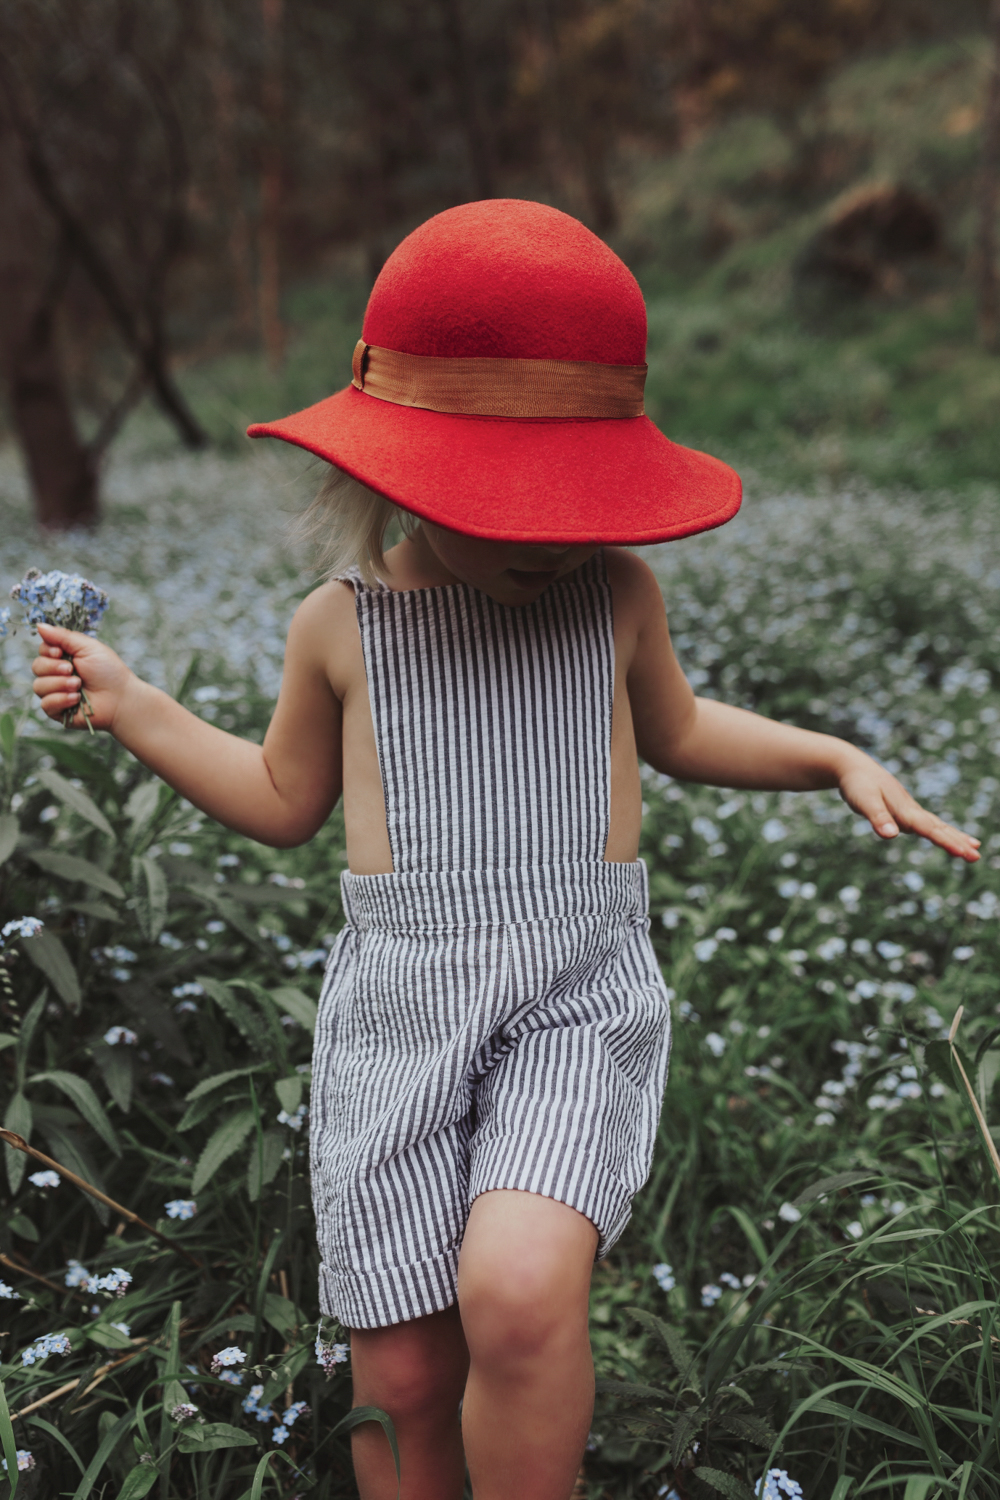 Young girl walks through field of flowers in beautiful photo sho